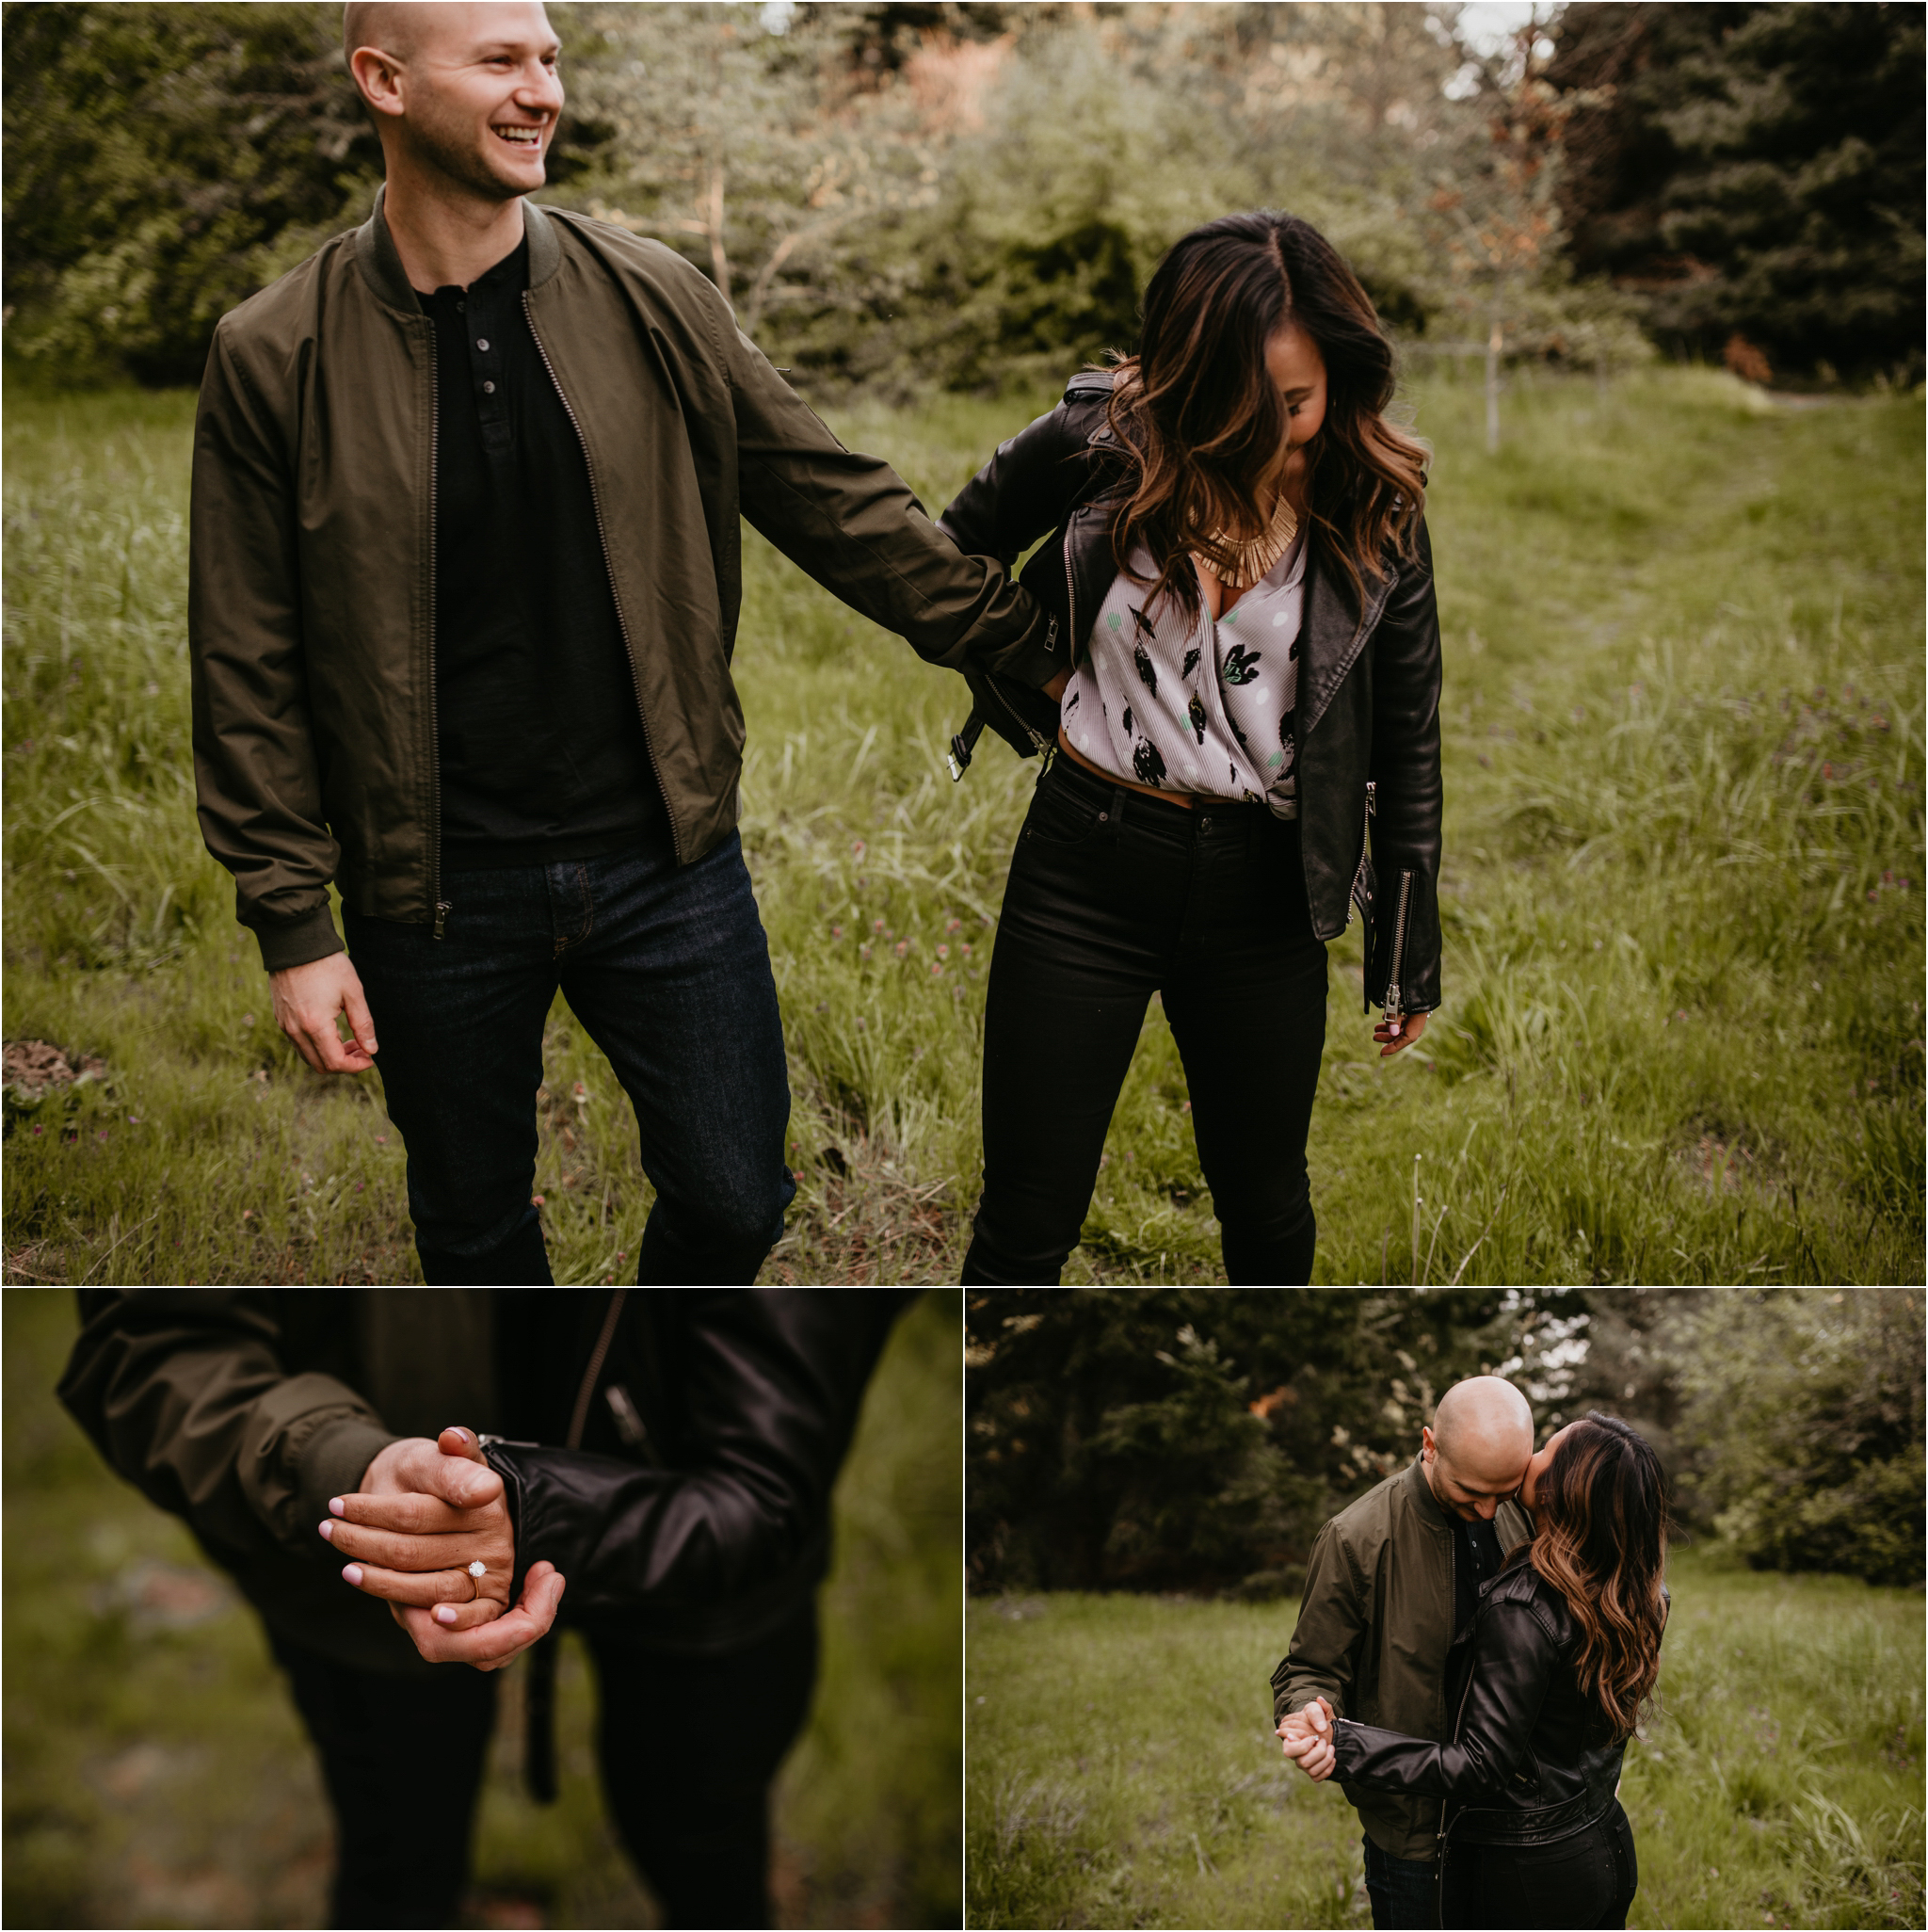 thuy-and-andrew-discovery-park-seattle-beach-engagement-session-022.jpg